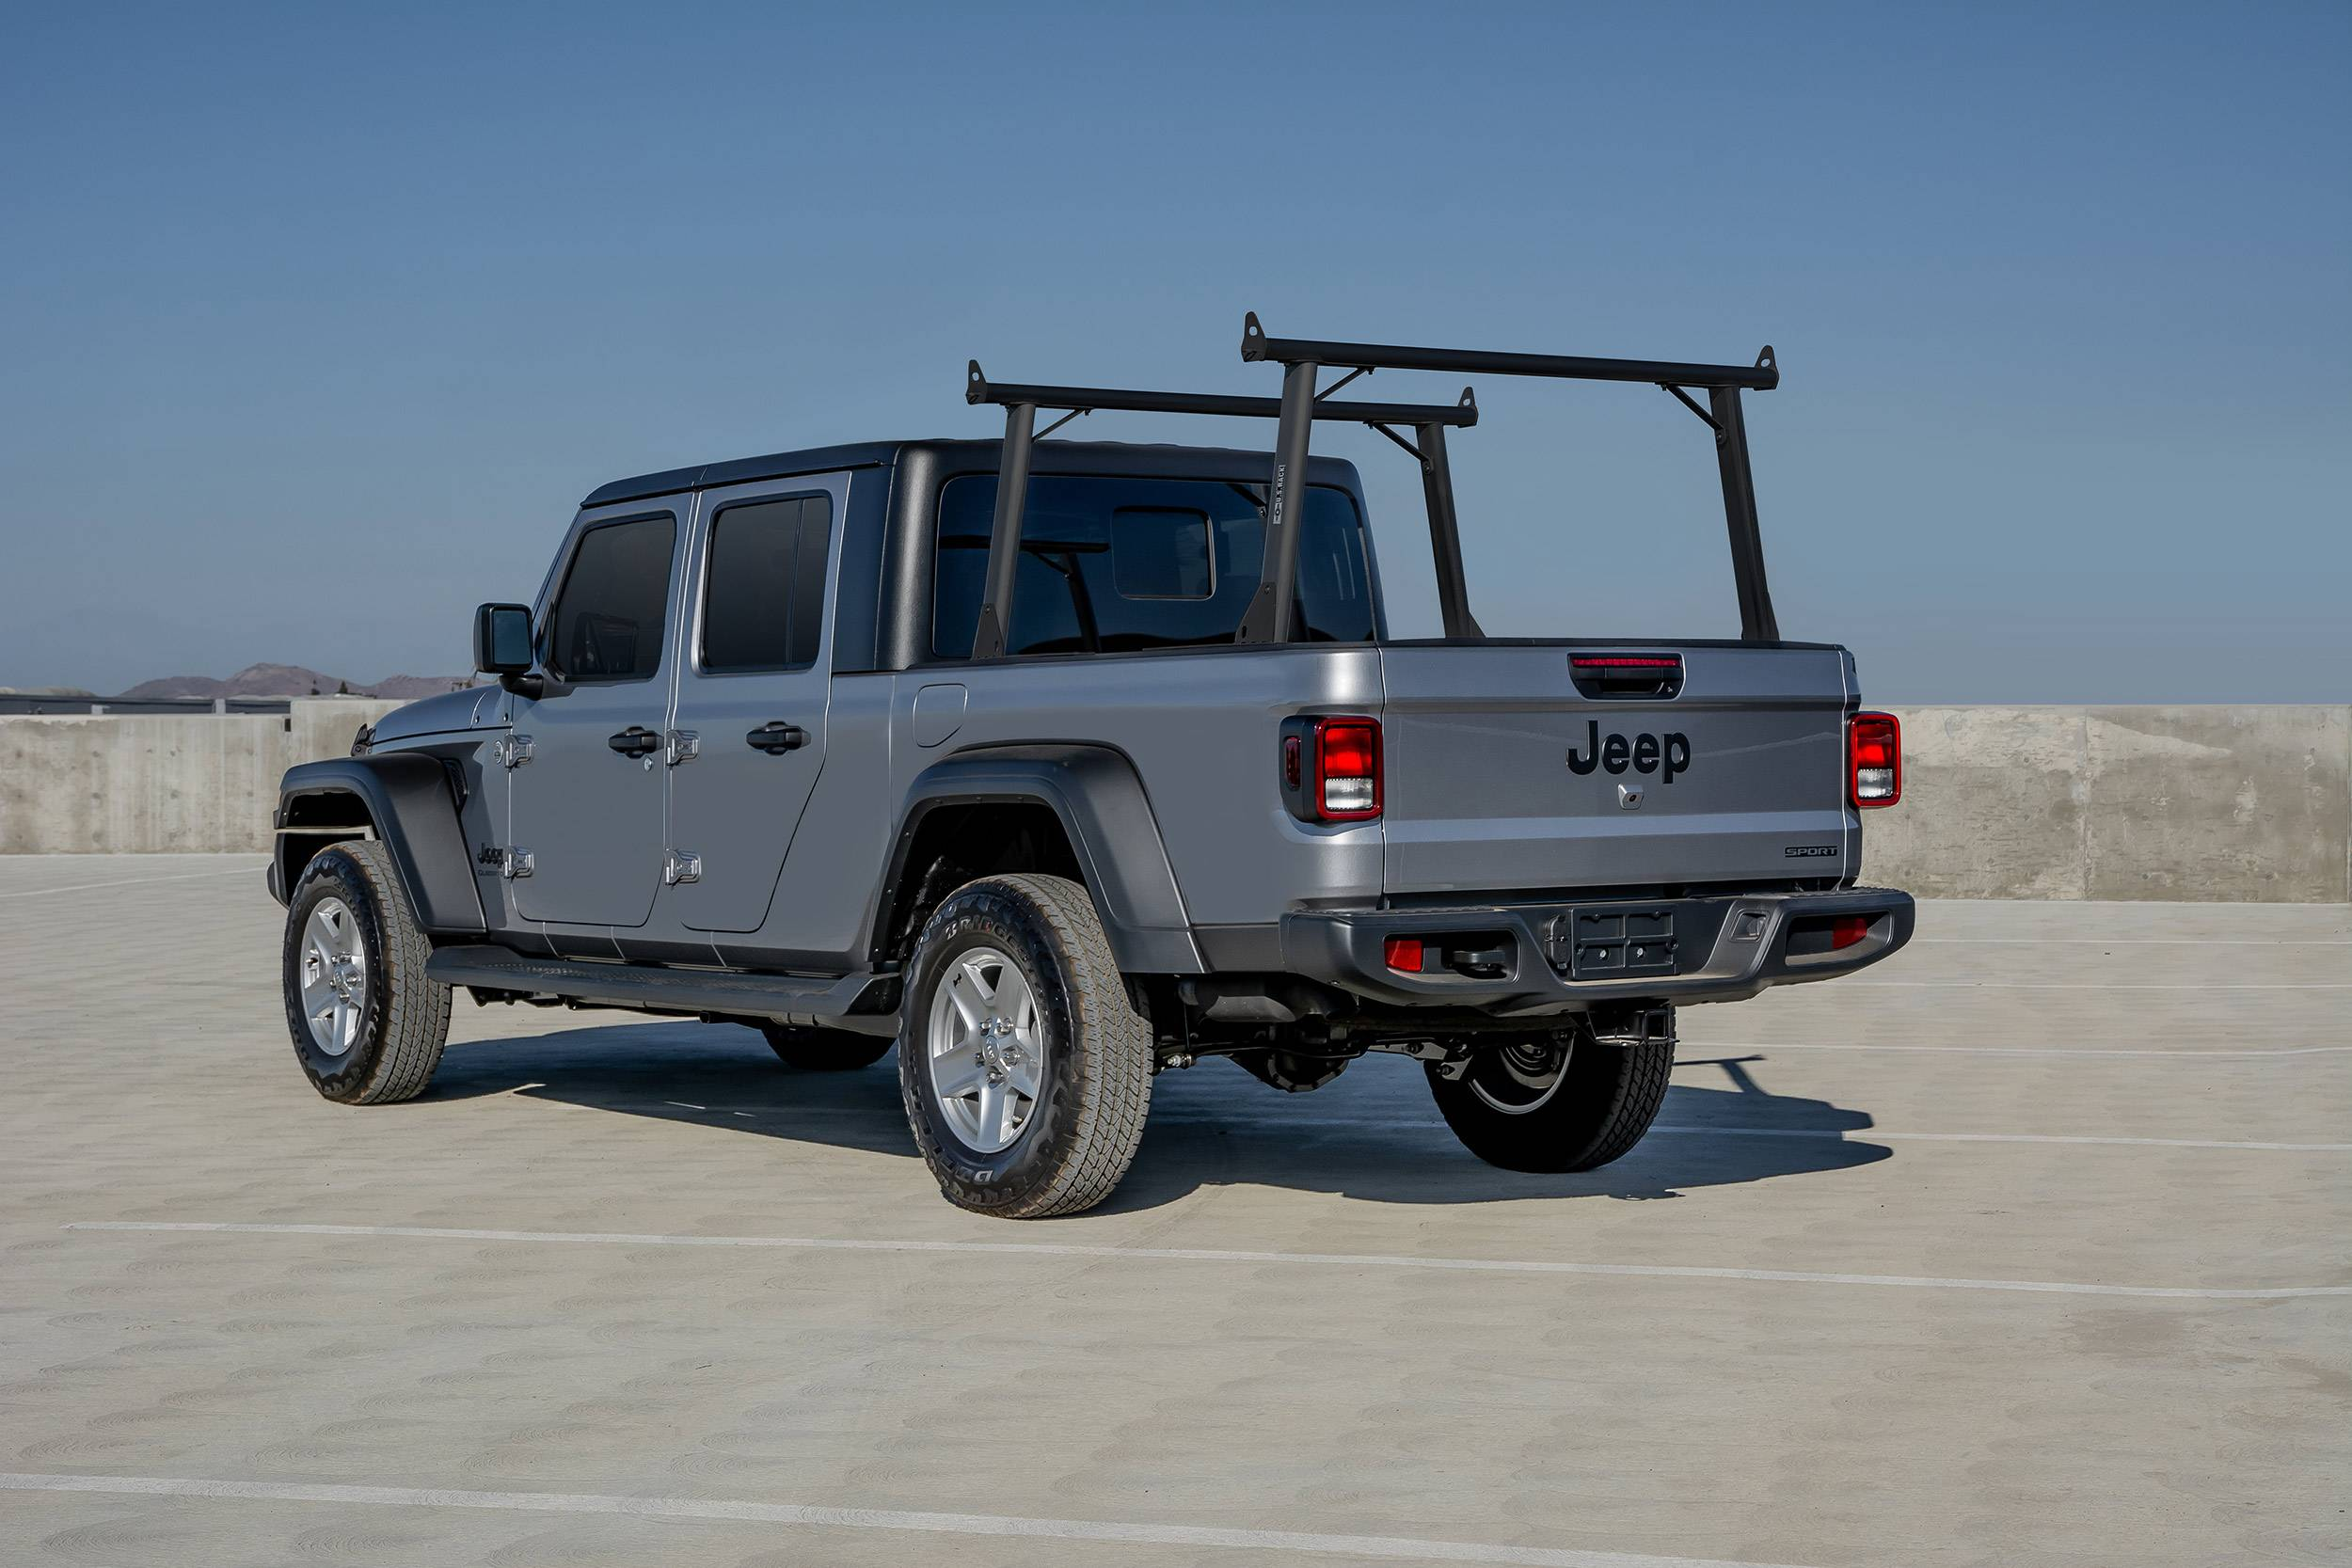 2020 Jeep Gladiator Clipper Truck Rack, Fleetside, Track System, Above Cab Height, All Black Cross Bar, Legs and Base - PN #82240151